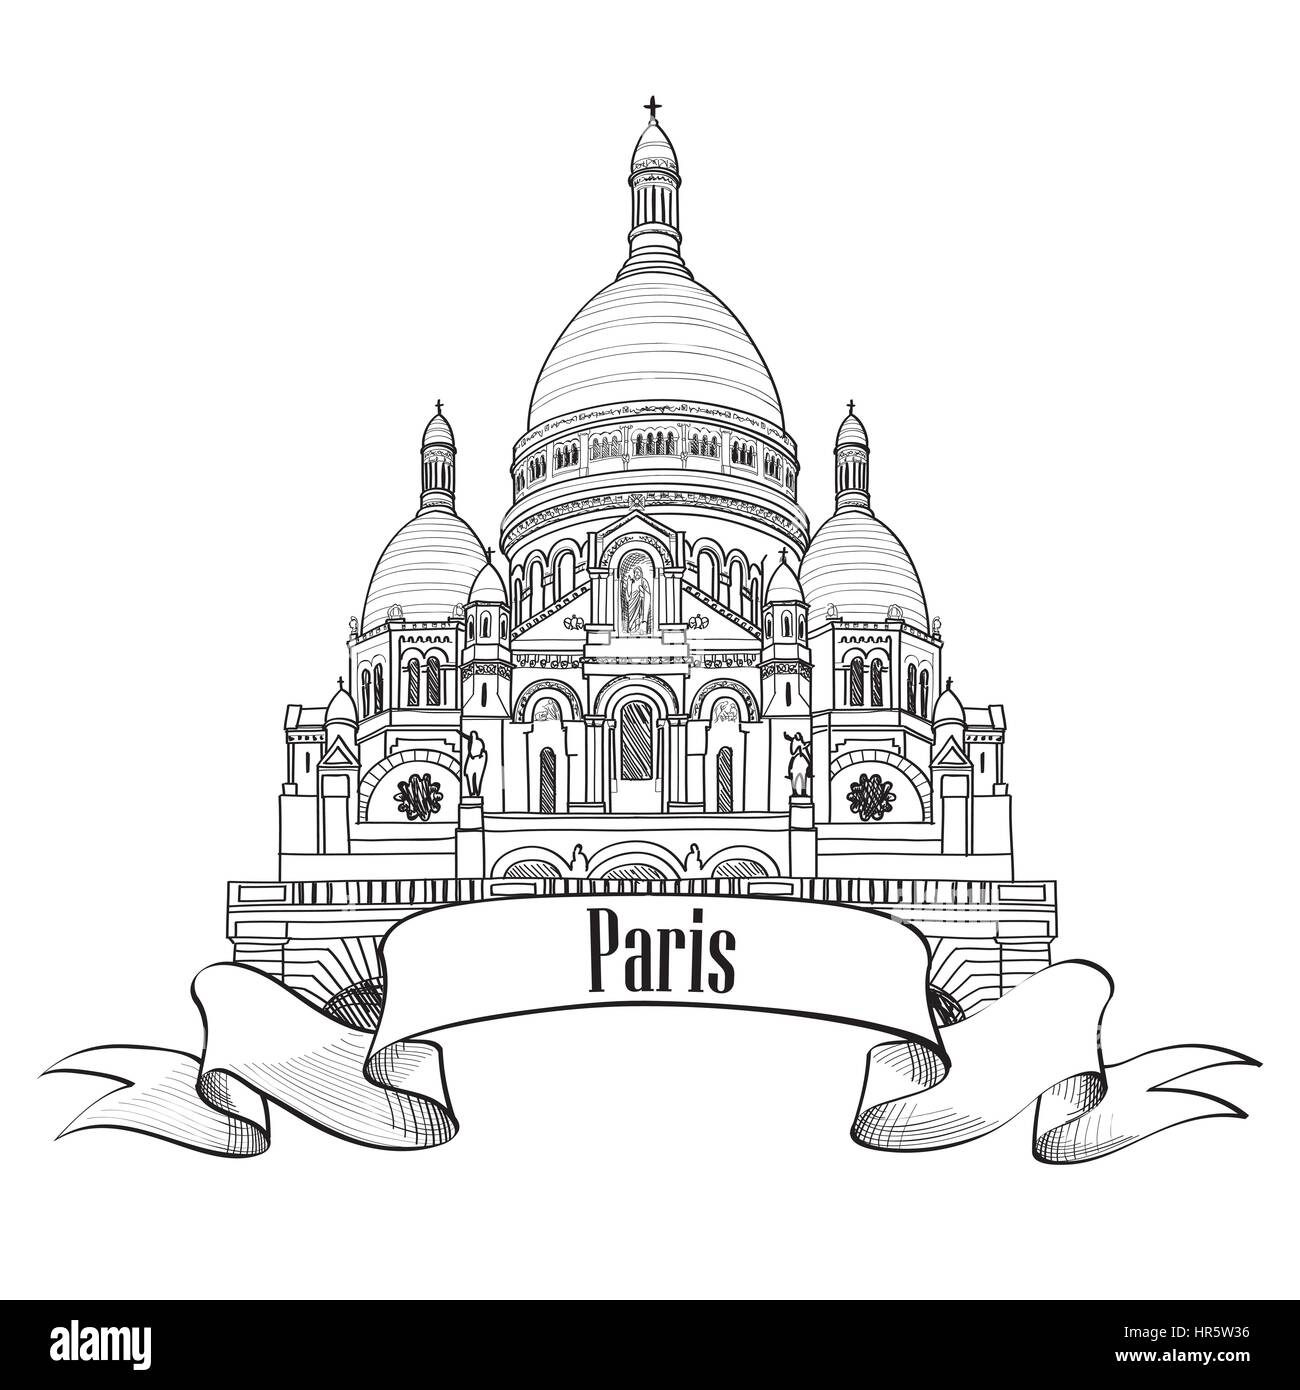 Paris landmark The Basilica of the Sacred Heart of Paris building. Montmartre symbol. Travel Paris engraved sign. - Stock Image